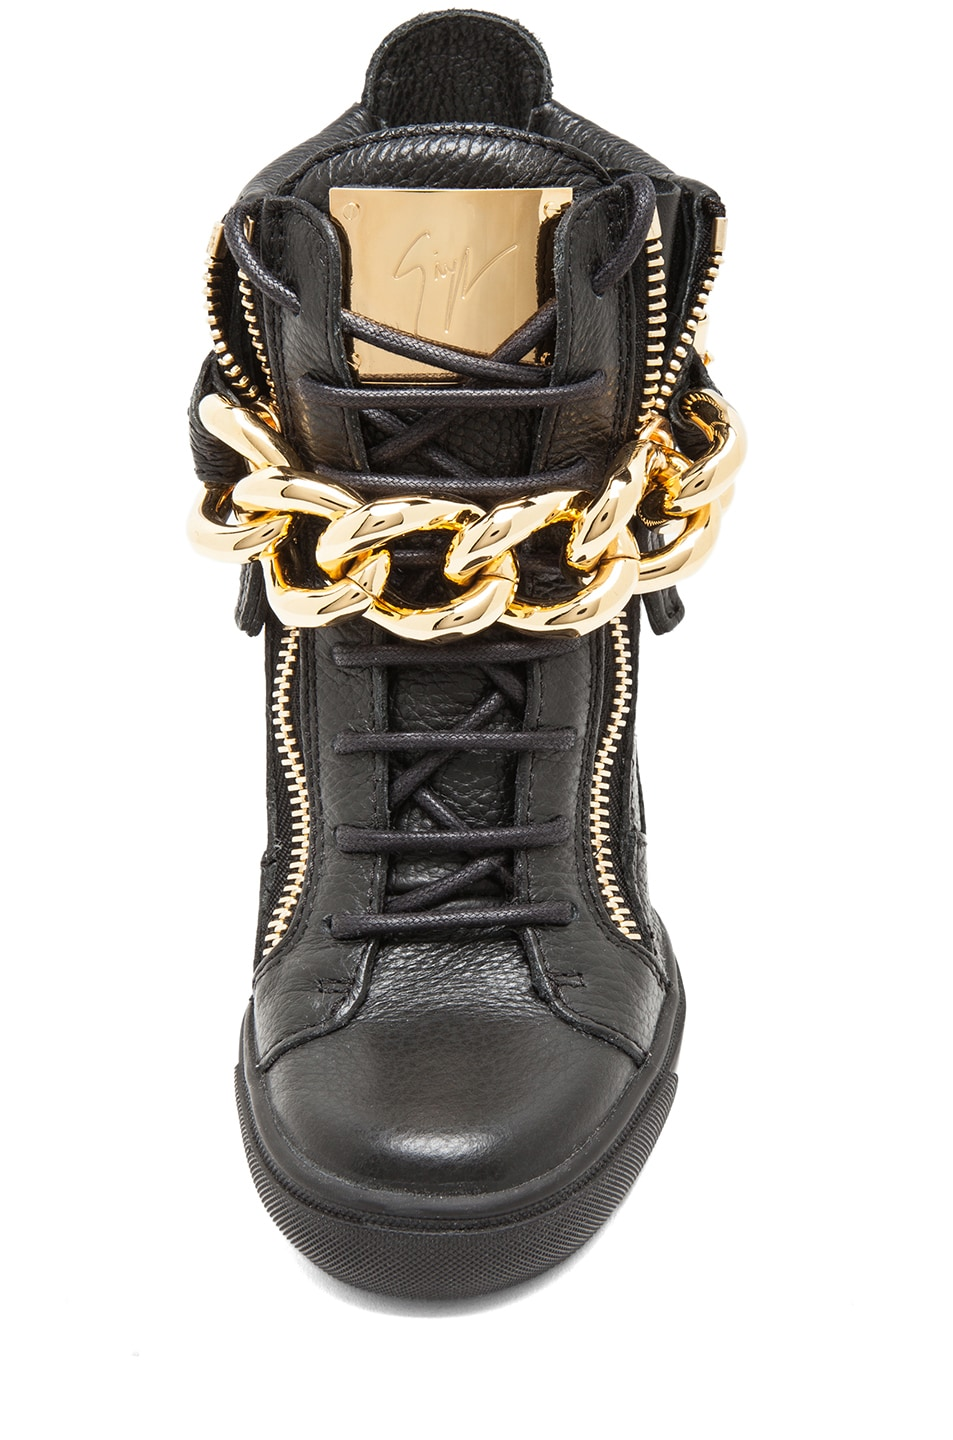 Image 4 of Giuseppe Zanotti Lorenz Grained Leather Wedge Sneakers with Chain in Black